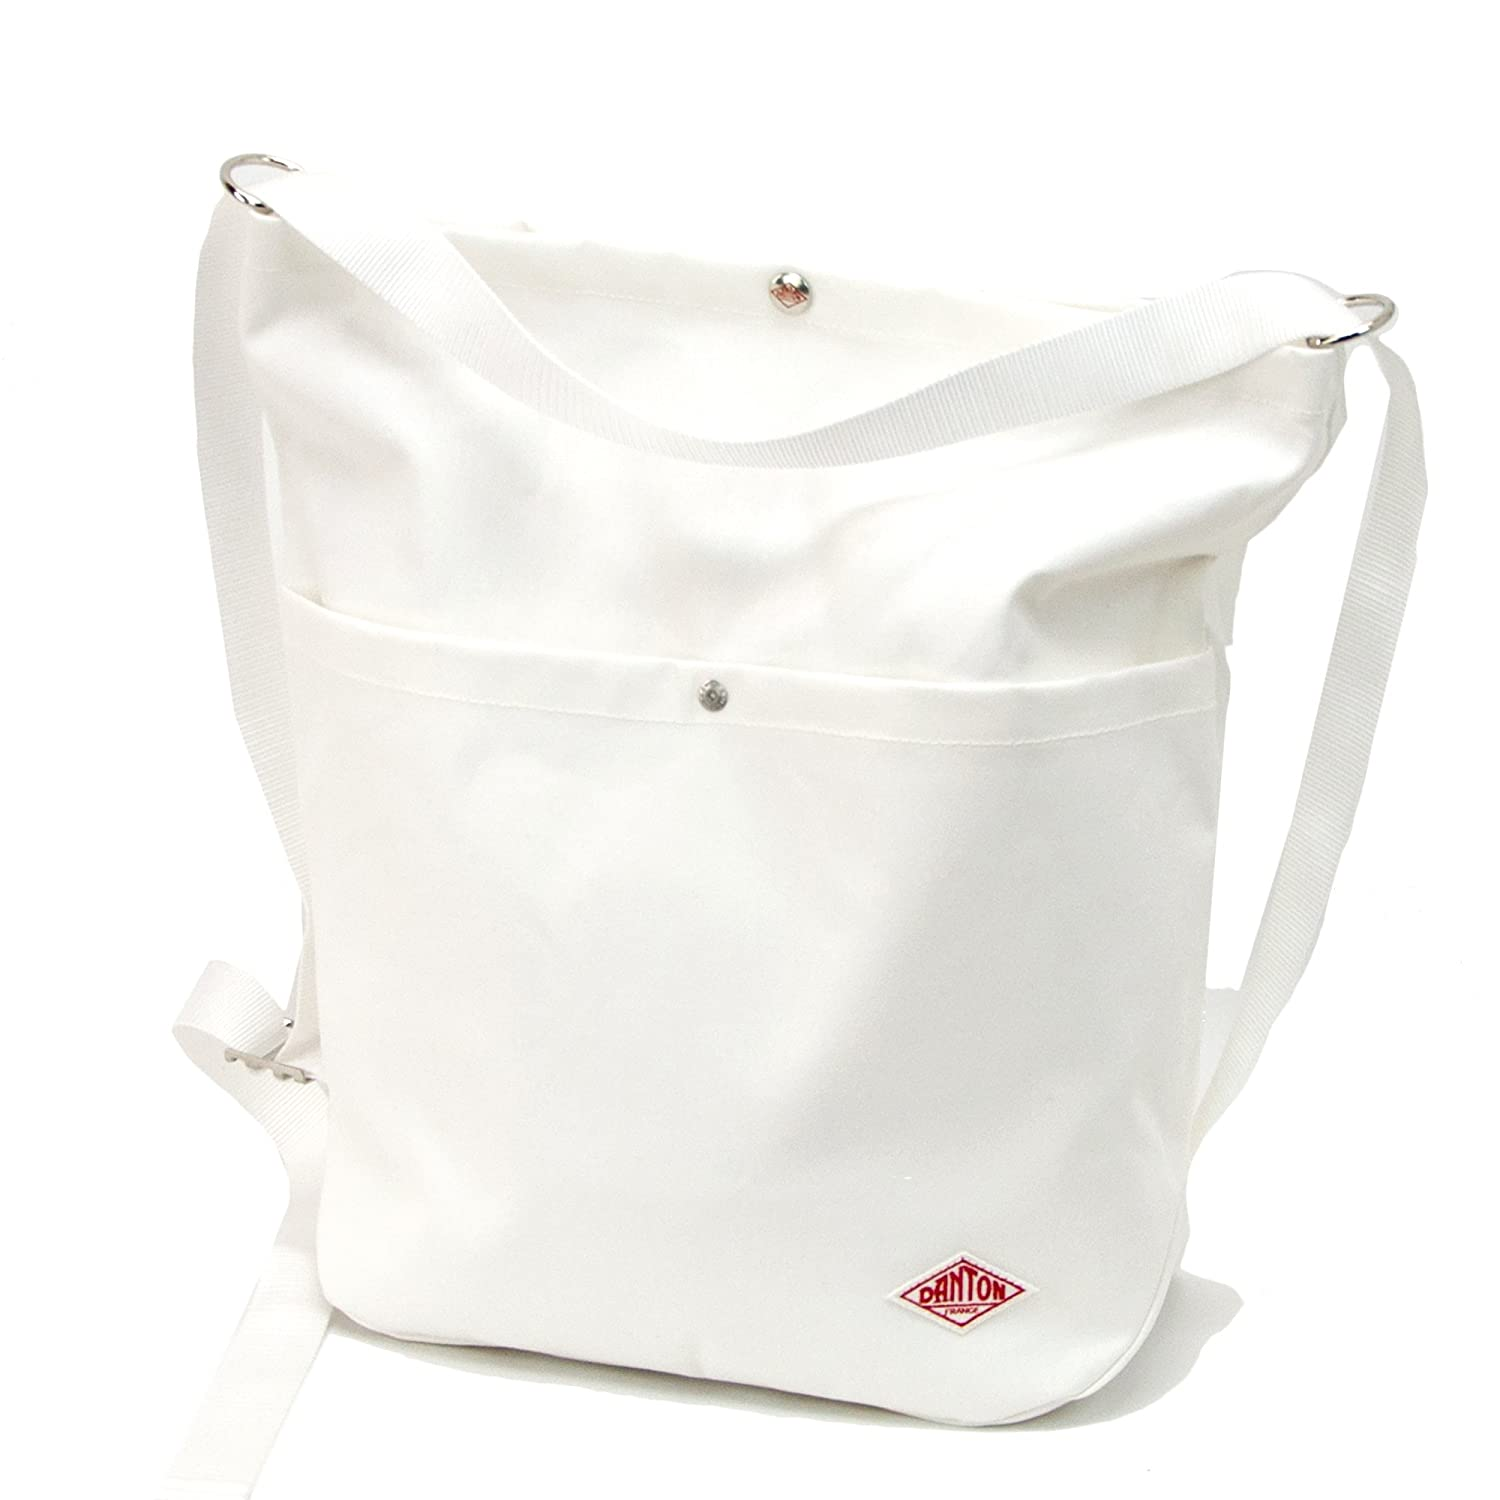 DANTON ダントン COTTON CANVAS 2WAY UTILITY BAG[JD-7092SCV] B07678QLL1 Off white Off white